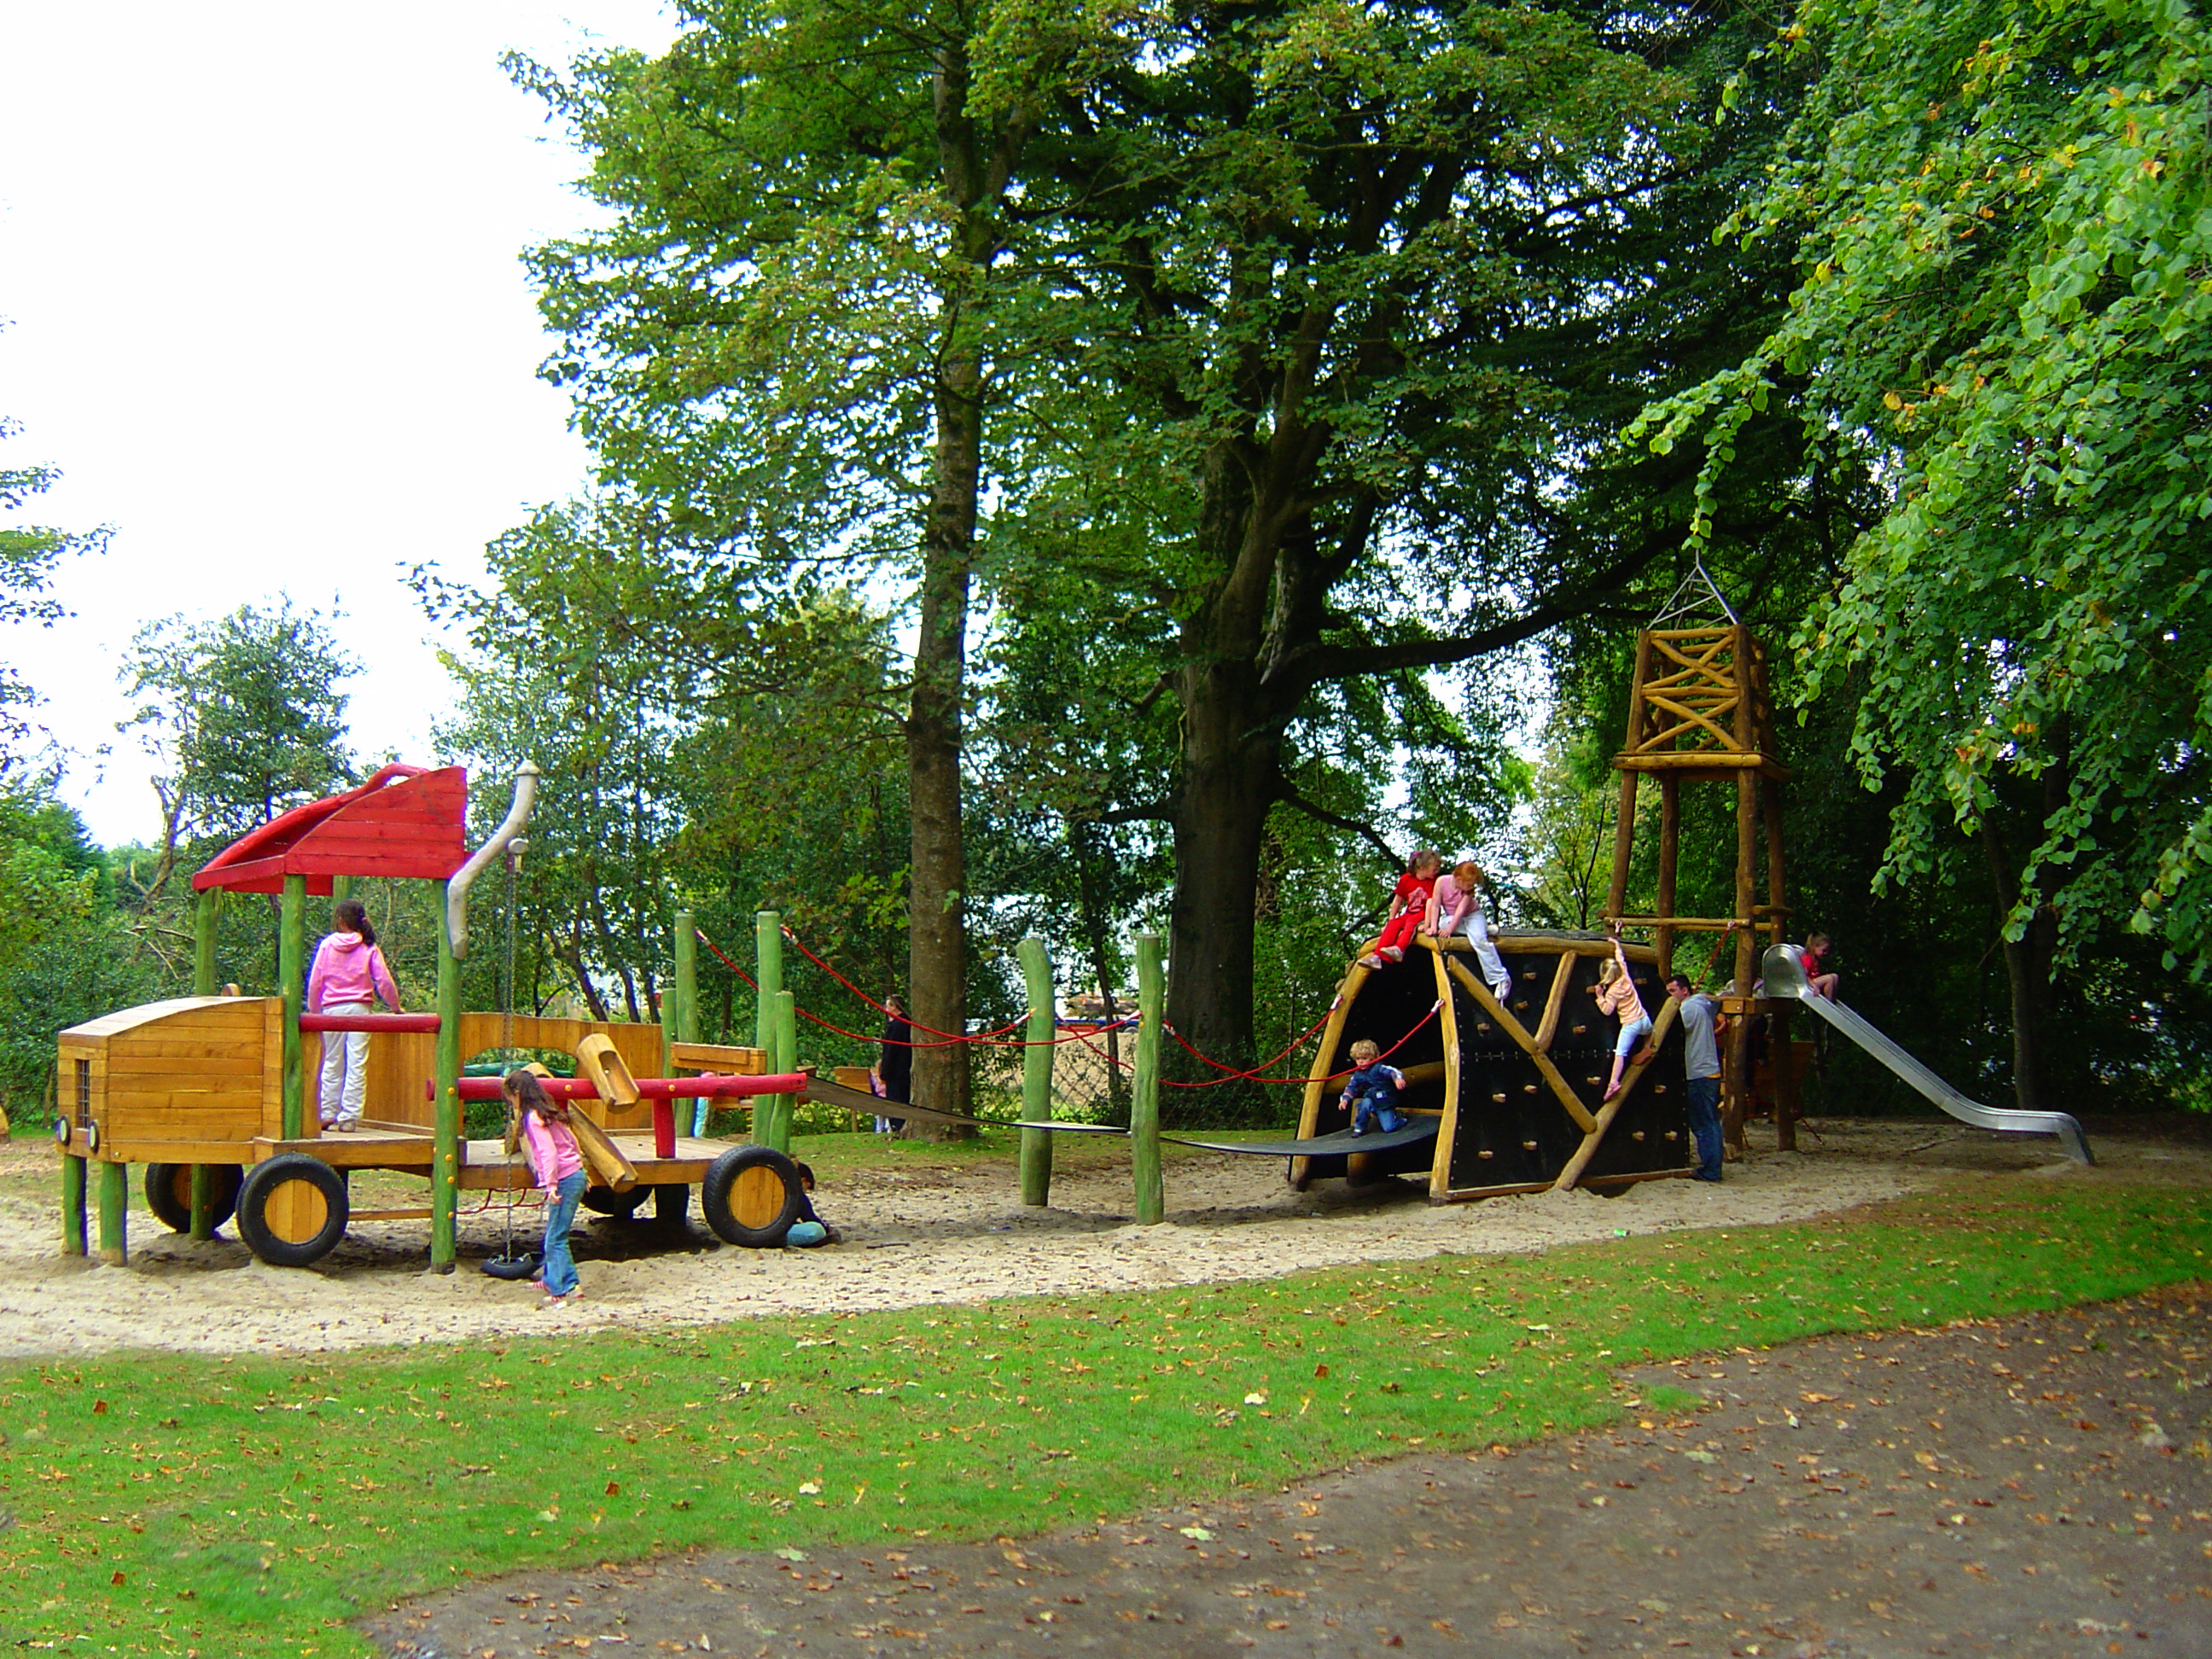 Playground for Castlecomer in Kilkenny